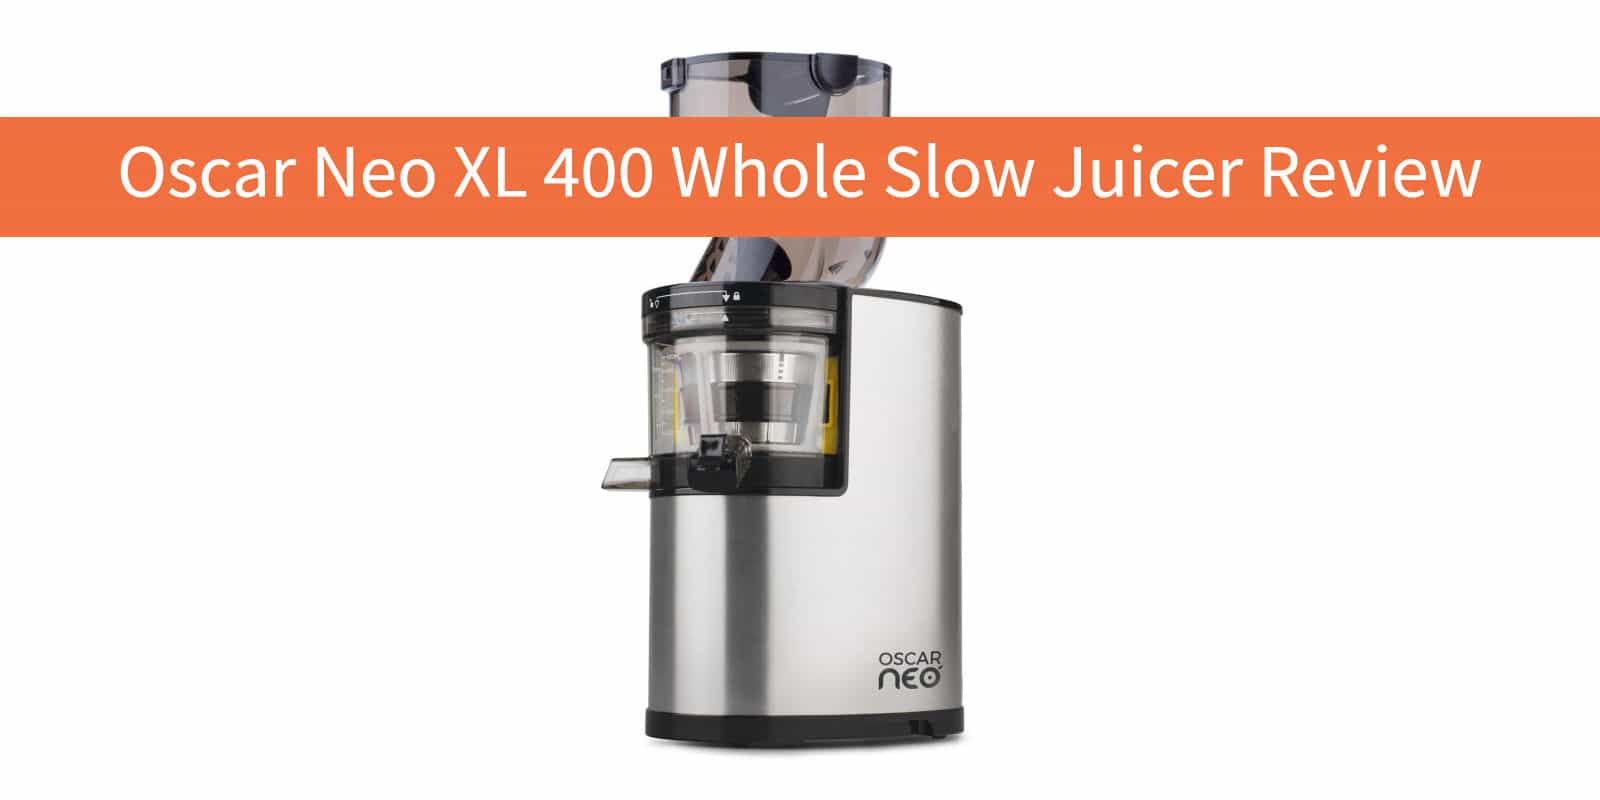 Slow Juicer Dishwasher Safe : Oscar Neo XL 400 Whole Slow Juicer Review vegByte